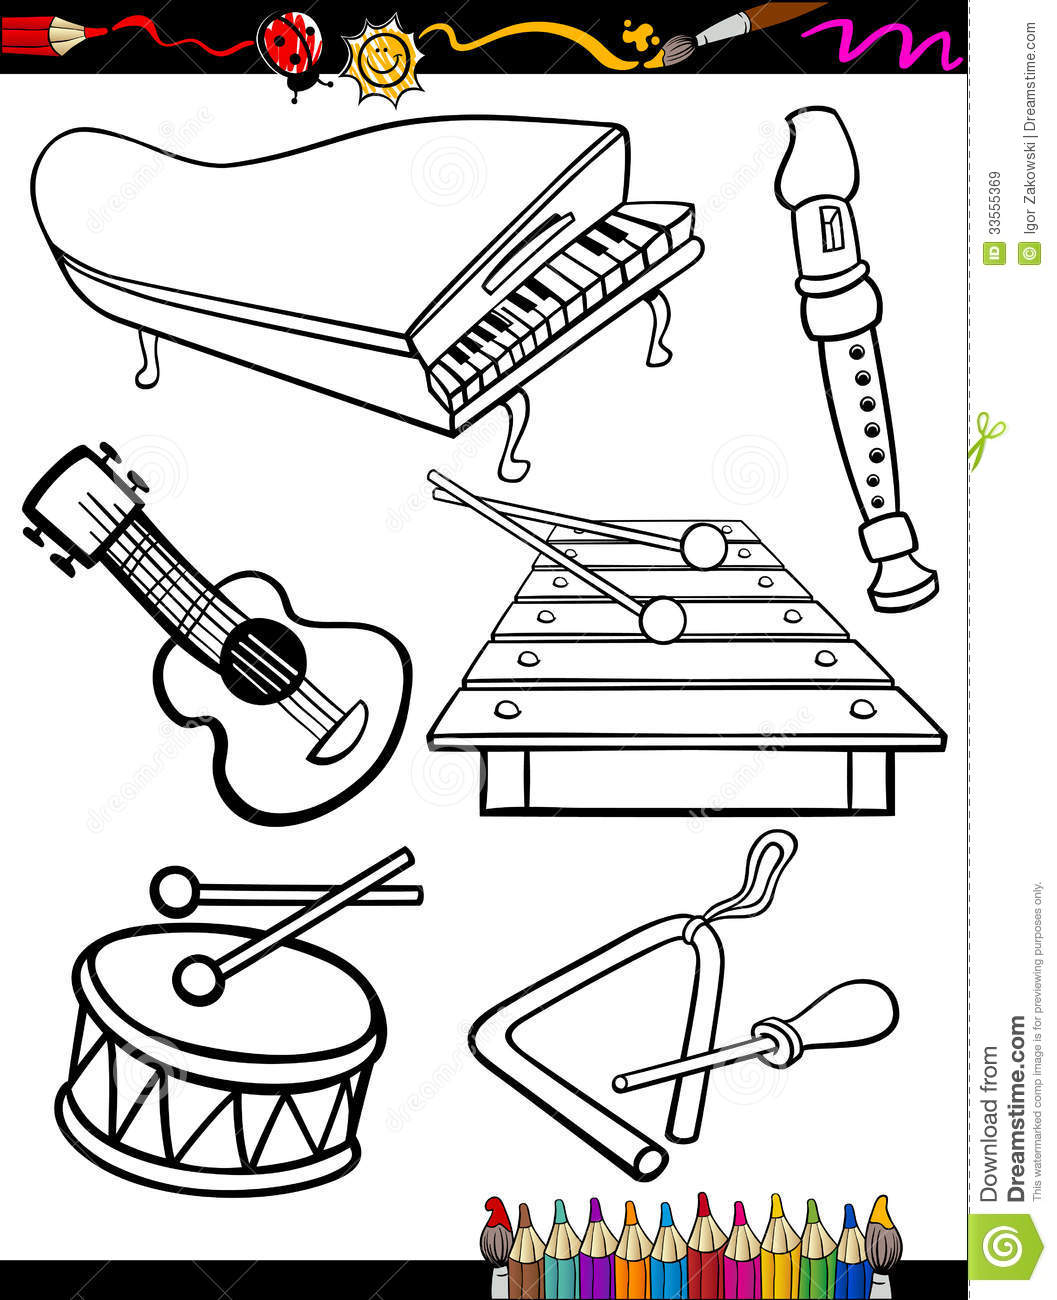 coloring pages musical instruments free images